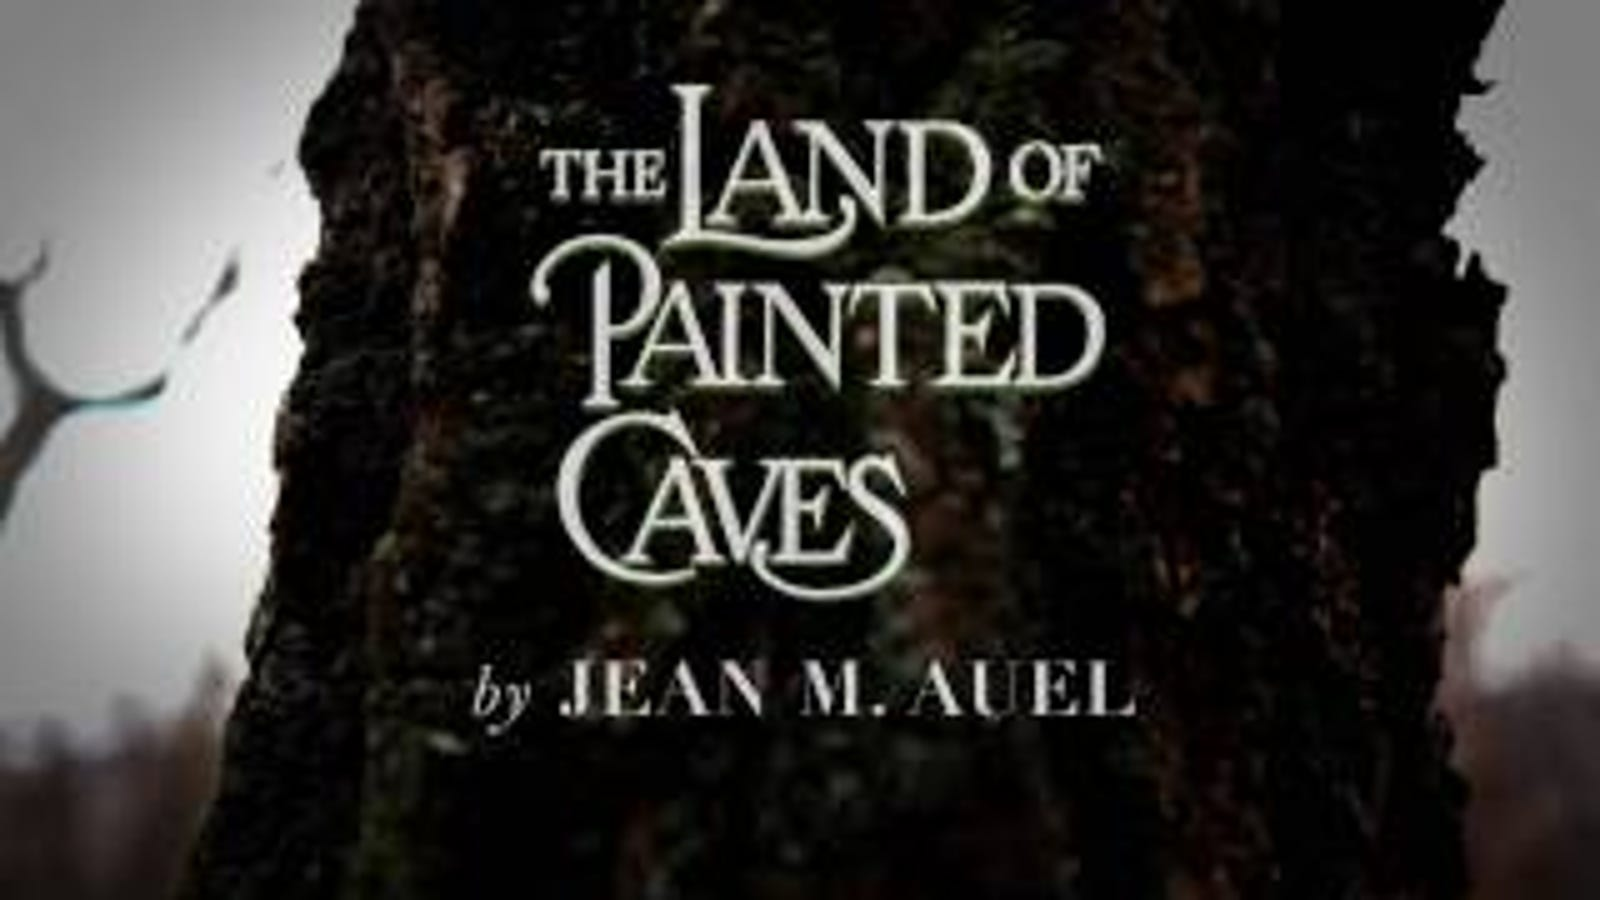 Clan Of The Cave Bear Saga Ends With 6th Book